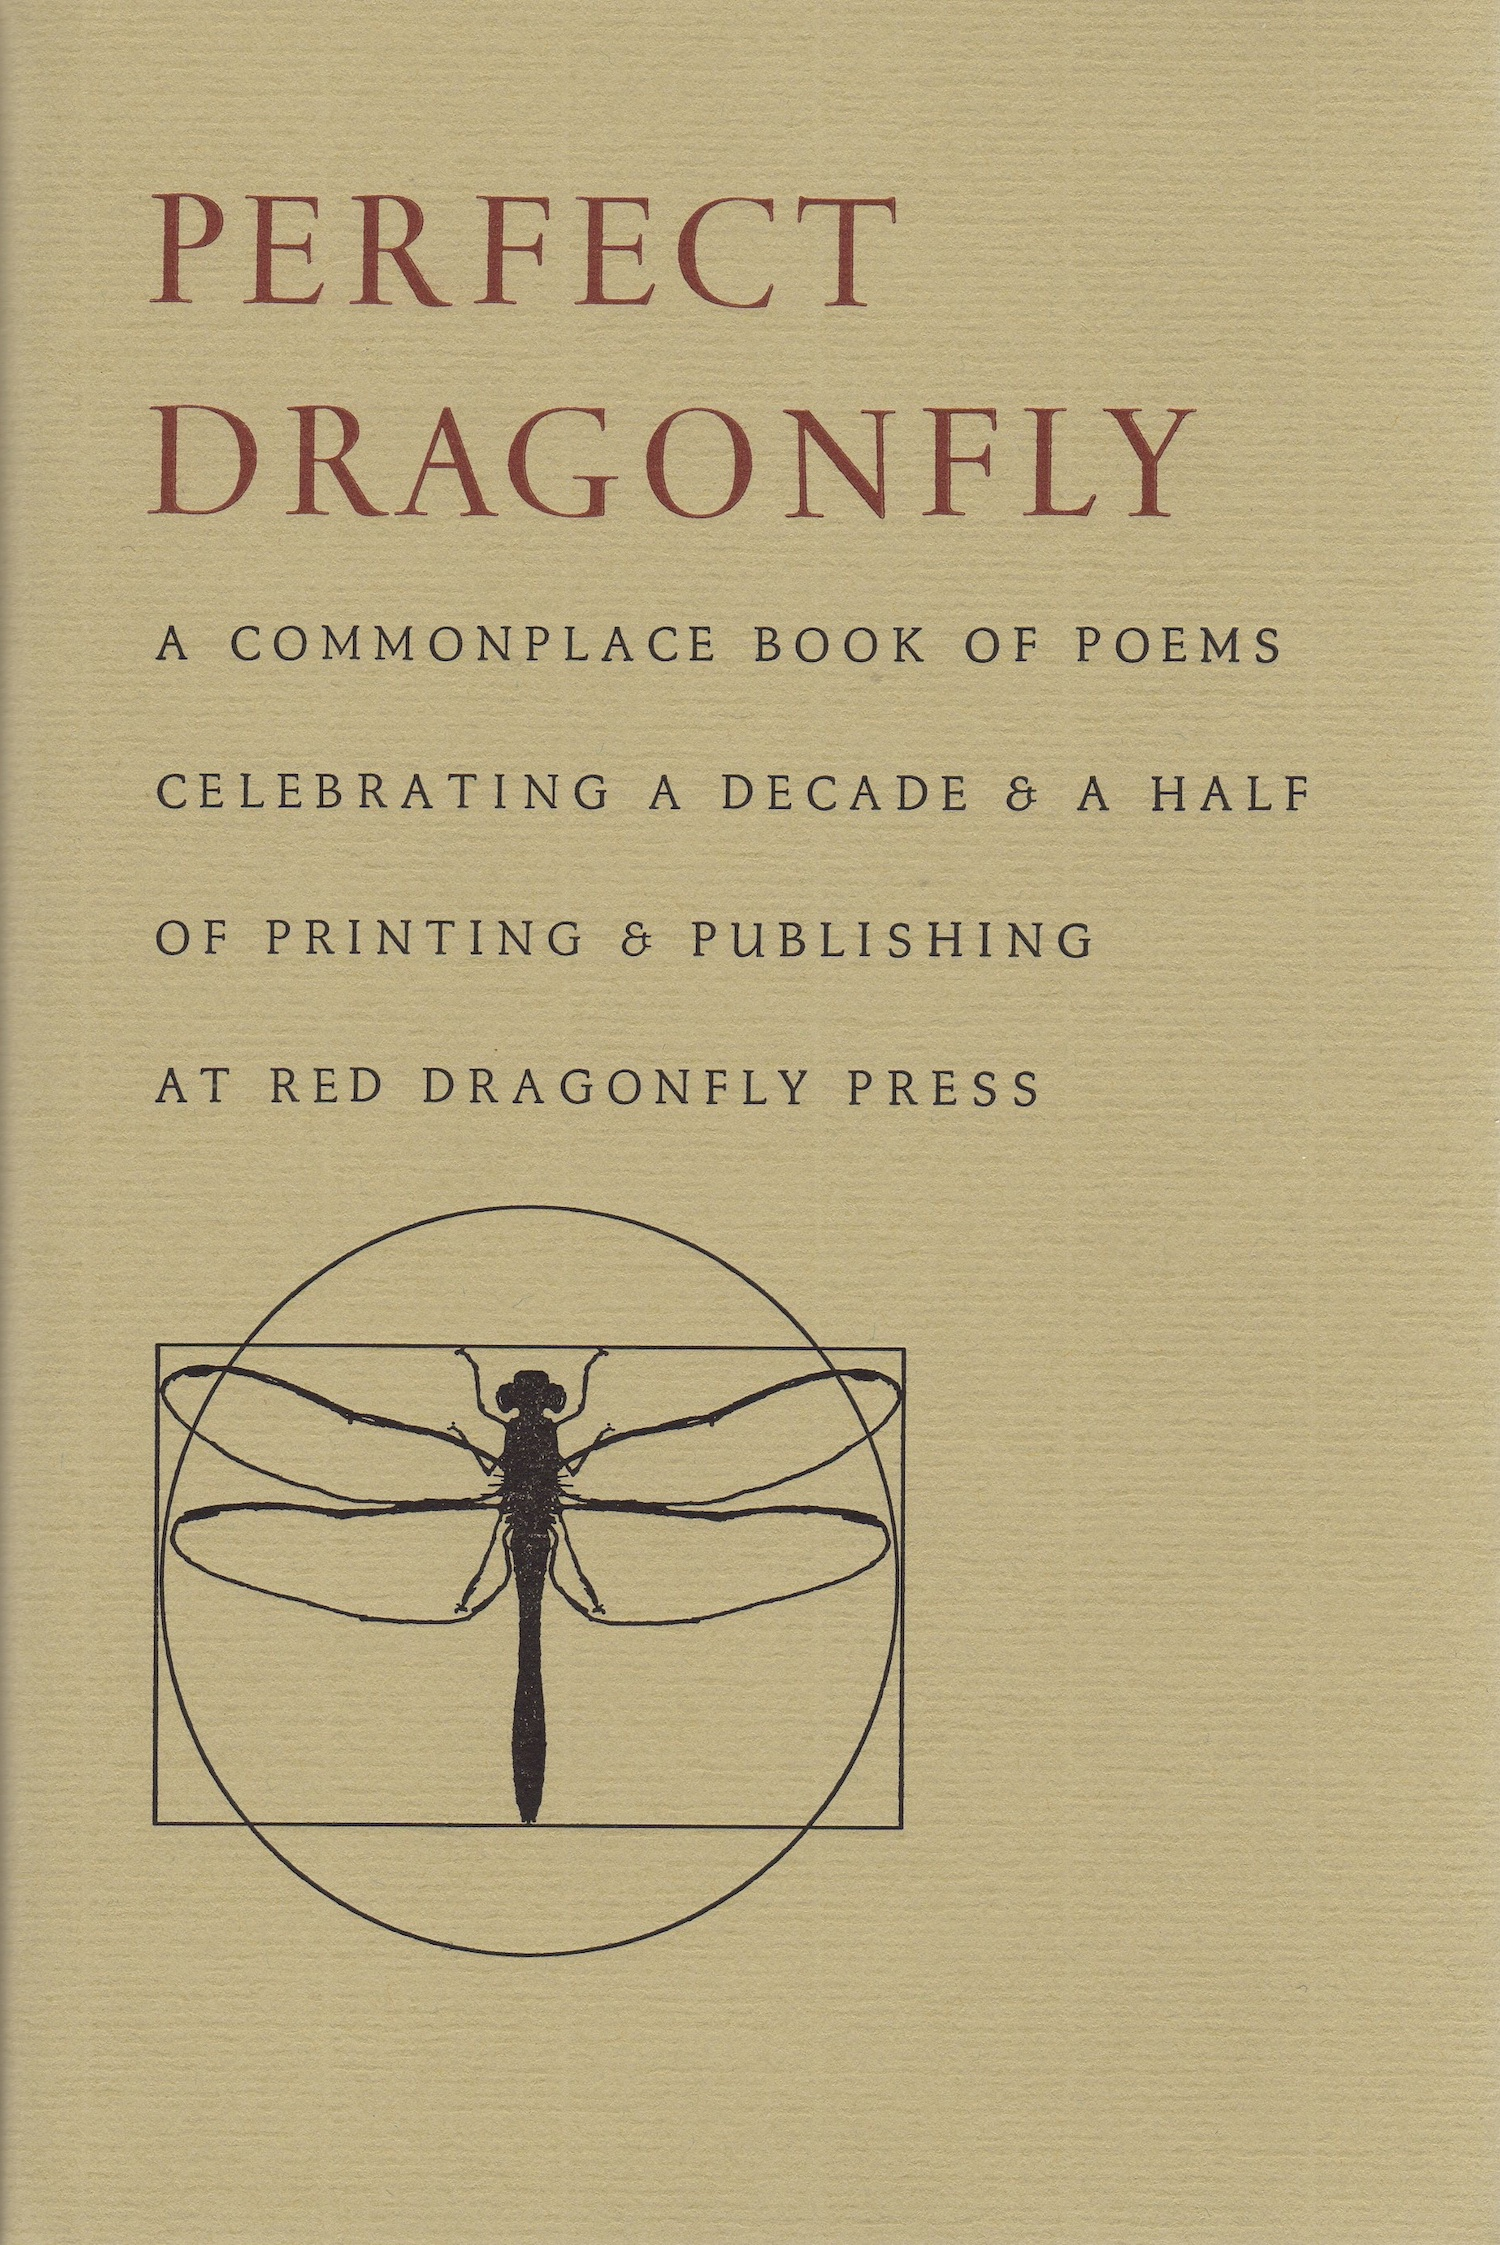 Perfect Dragonfly includes work by sixty-seven poets